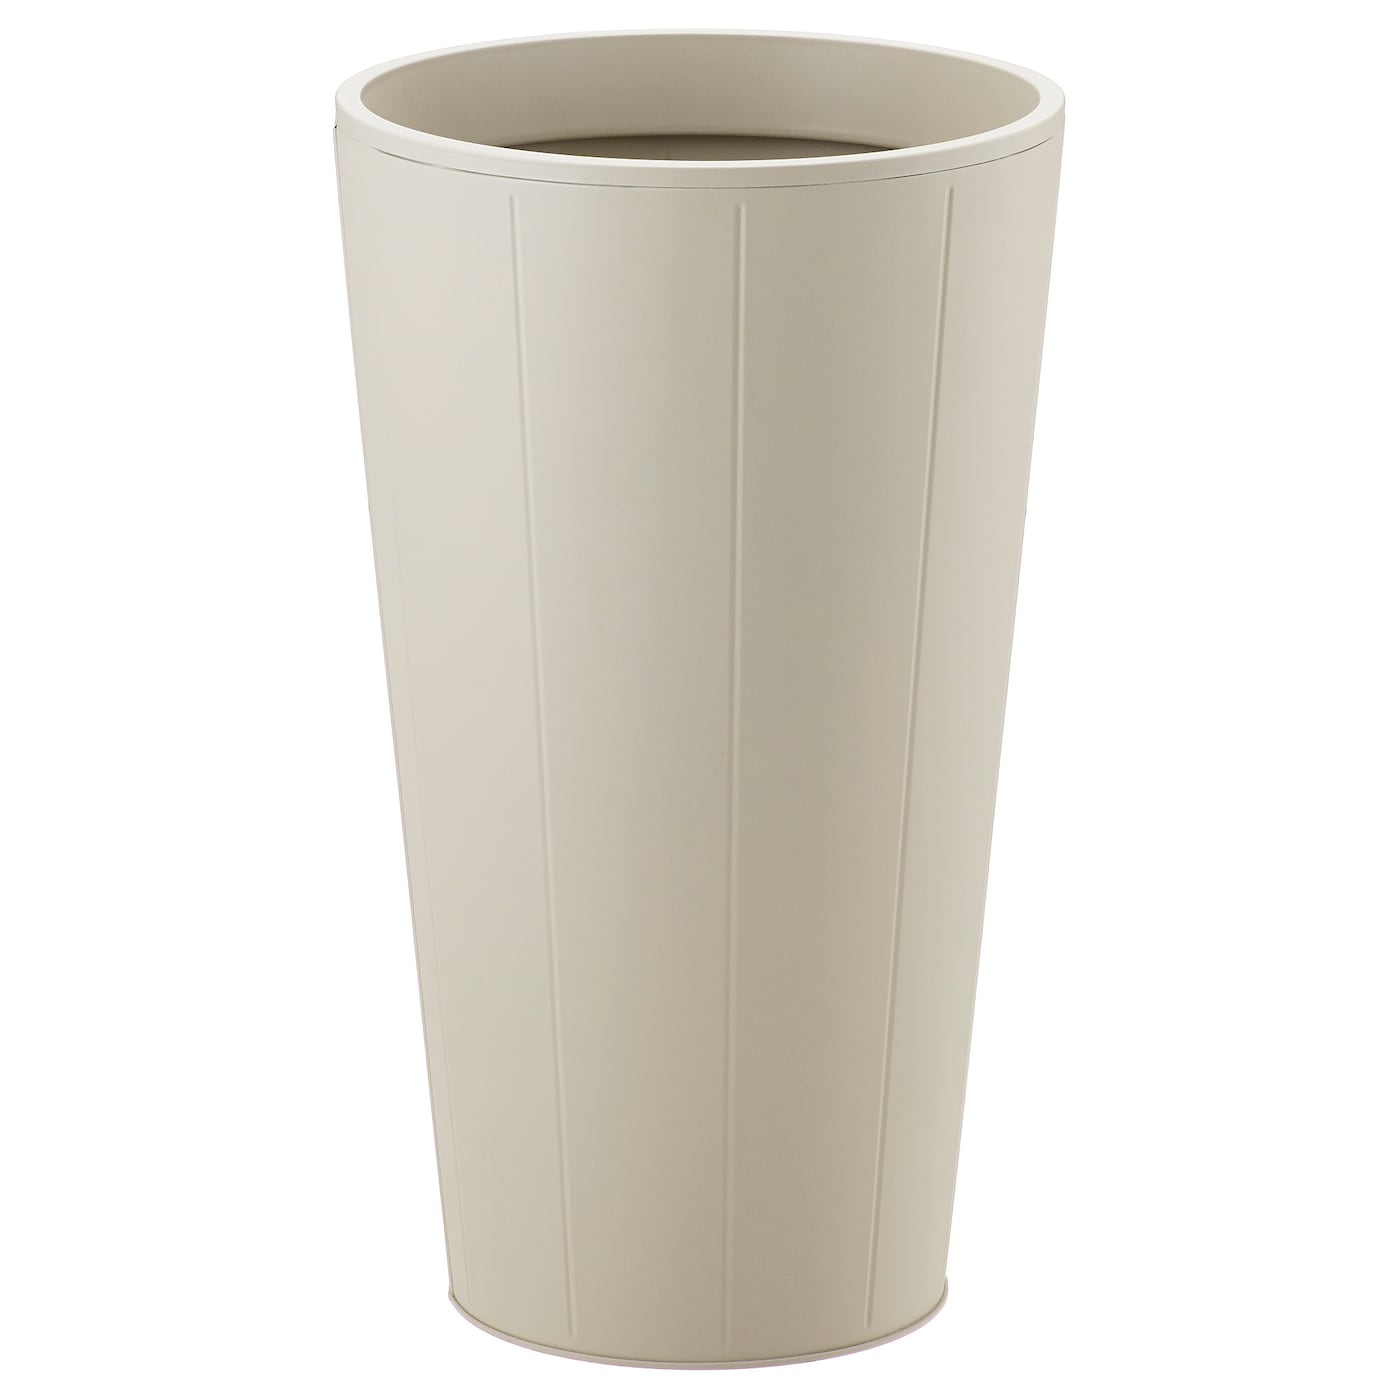 IKEA GRÄSET plant pot The plant pot is galvanised to protect against corrosion.